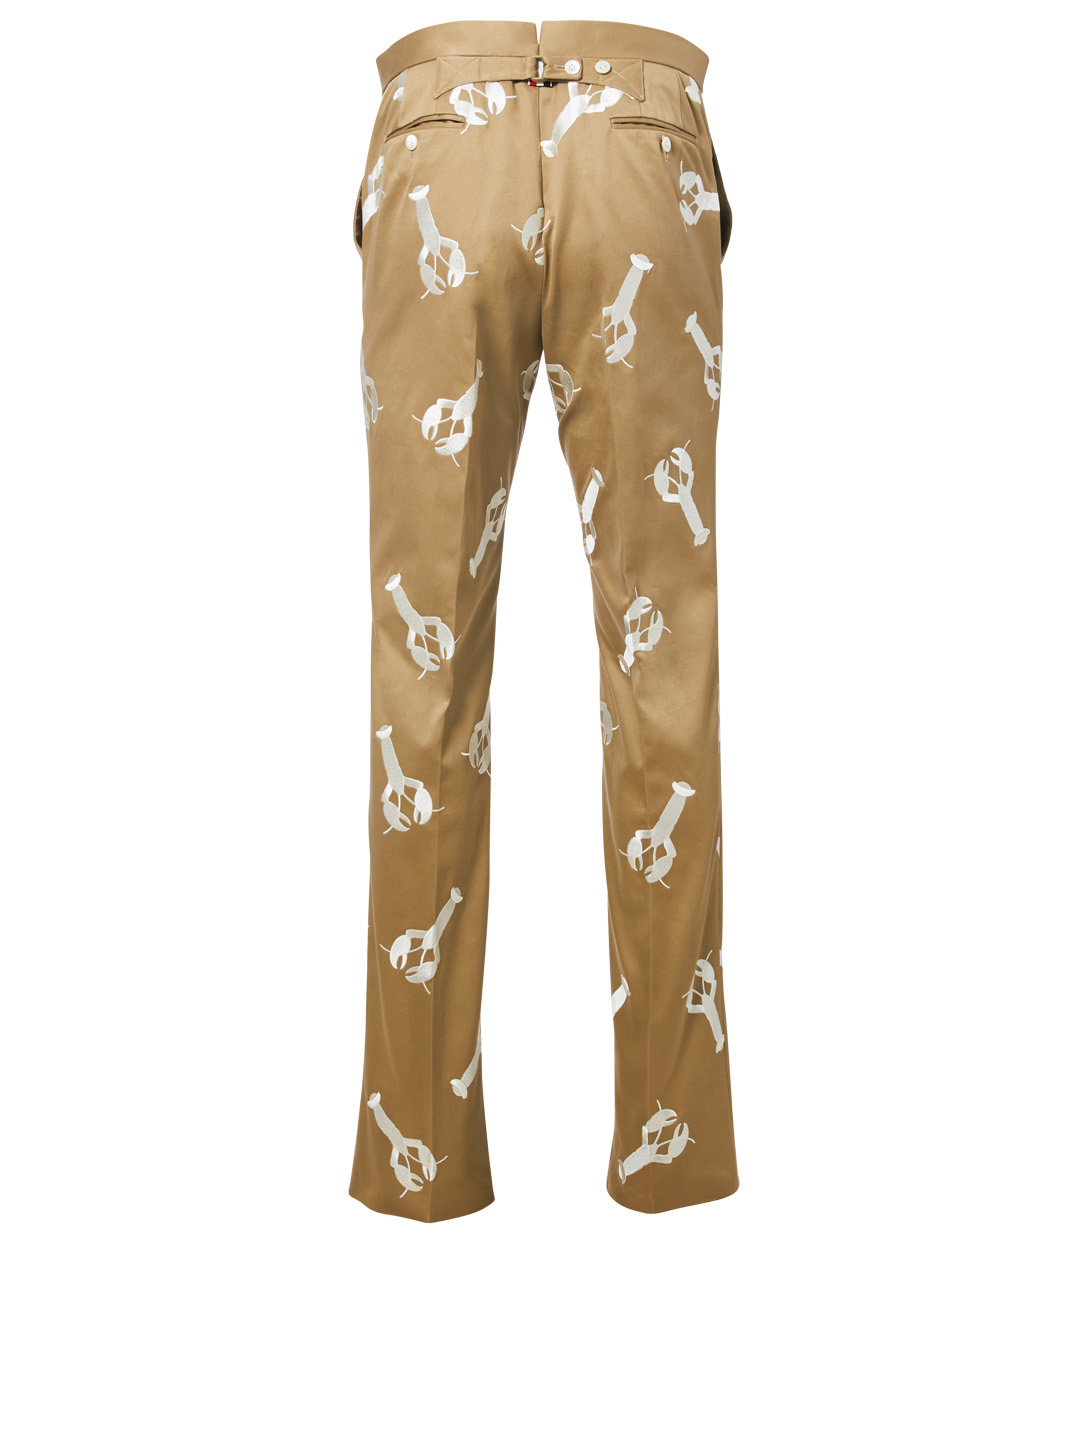 THOM BROWNE Embroidered Lobster Chino Pants Men's Neutral